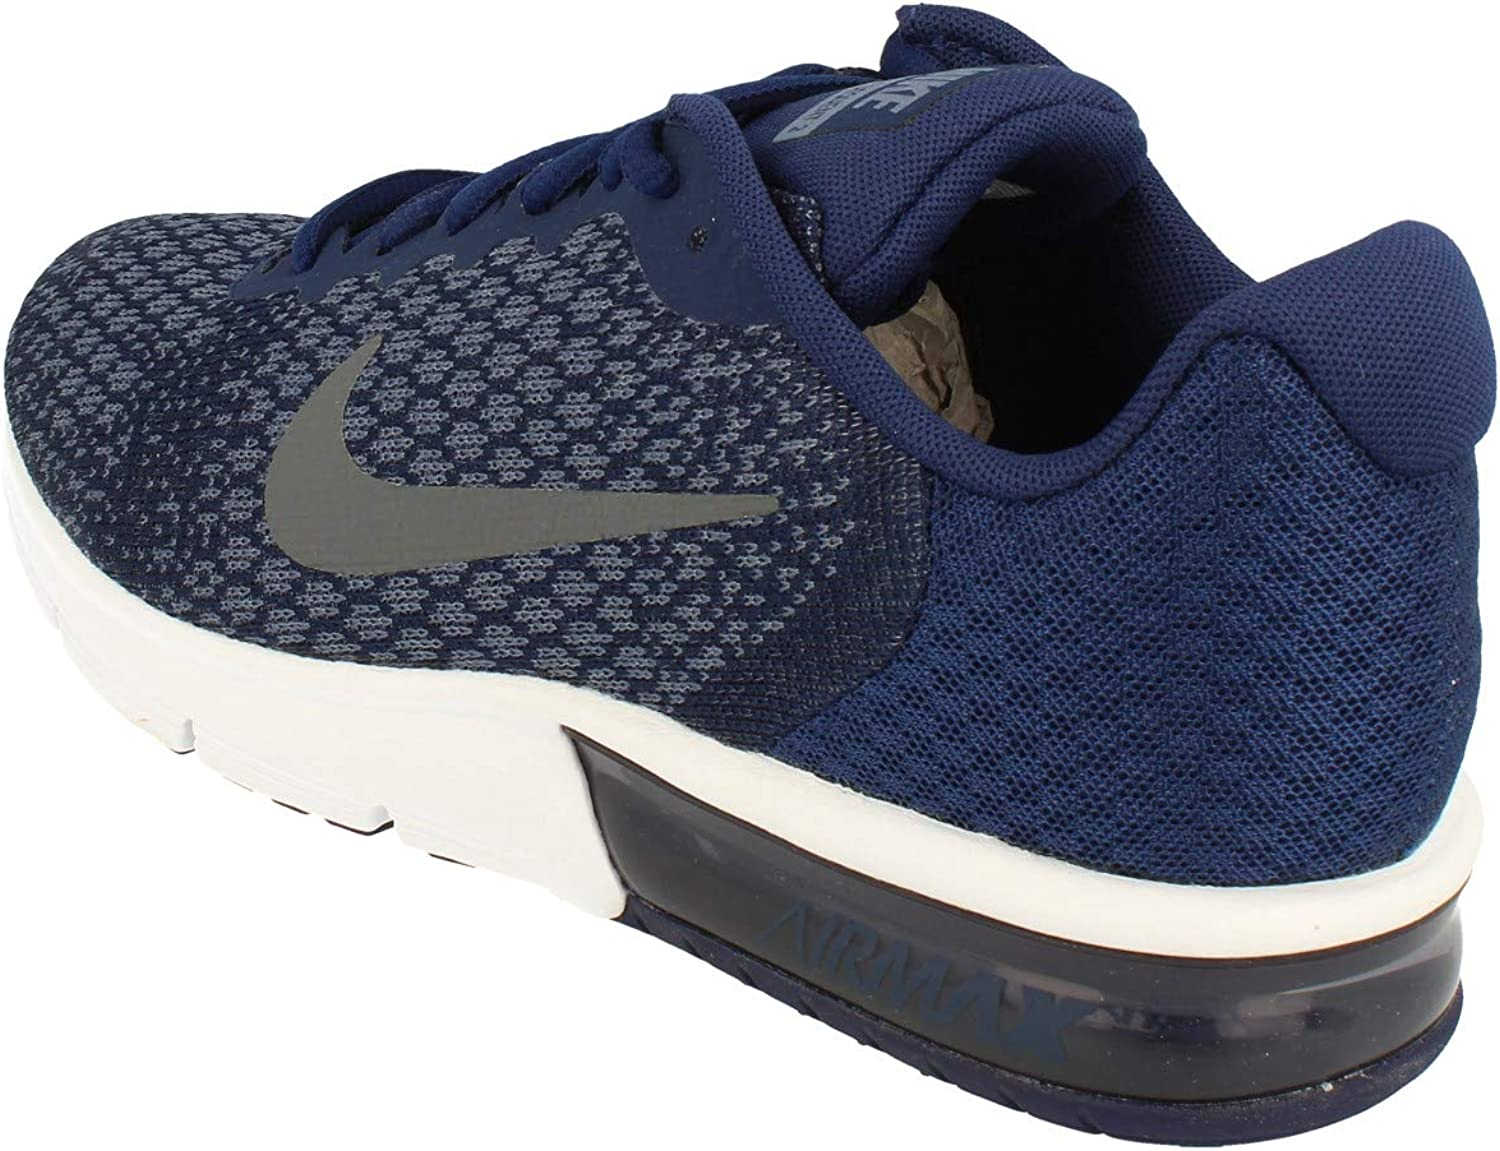 Nike Air Max Sequent 2, Chaussures de Fitness Homme : Amazon.fr ...